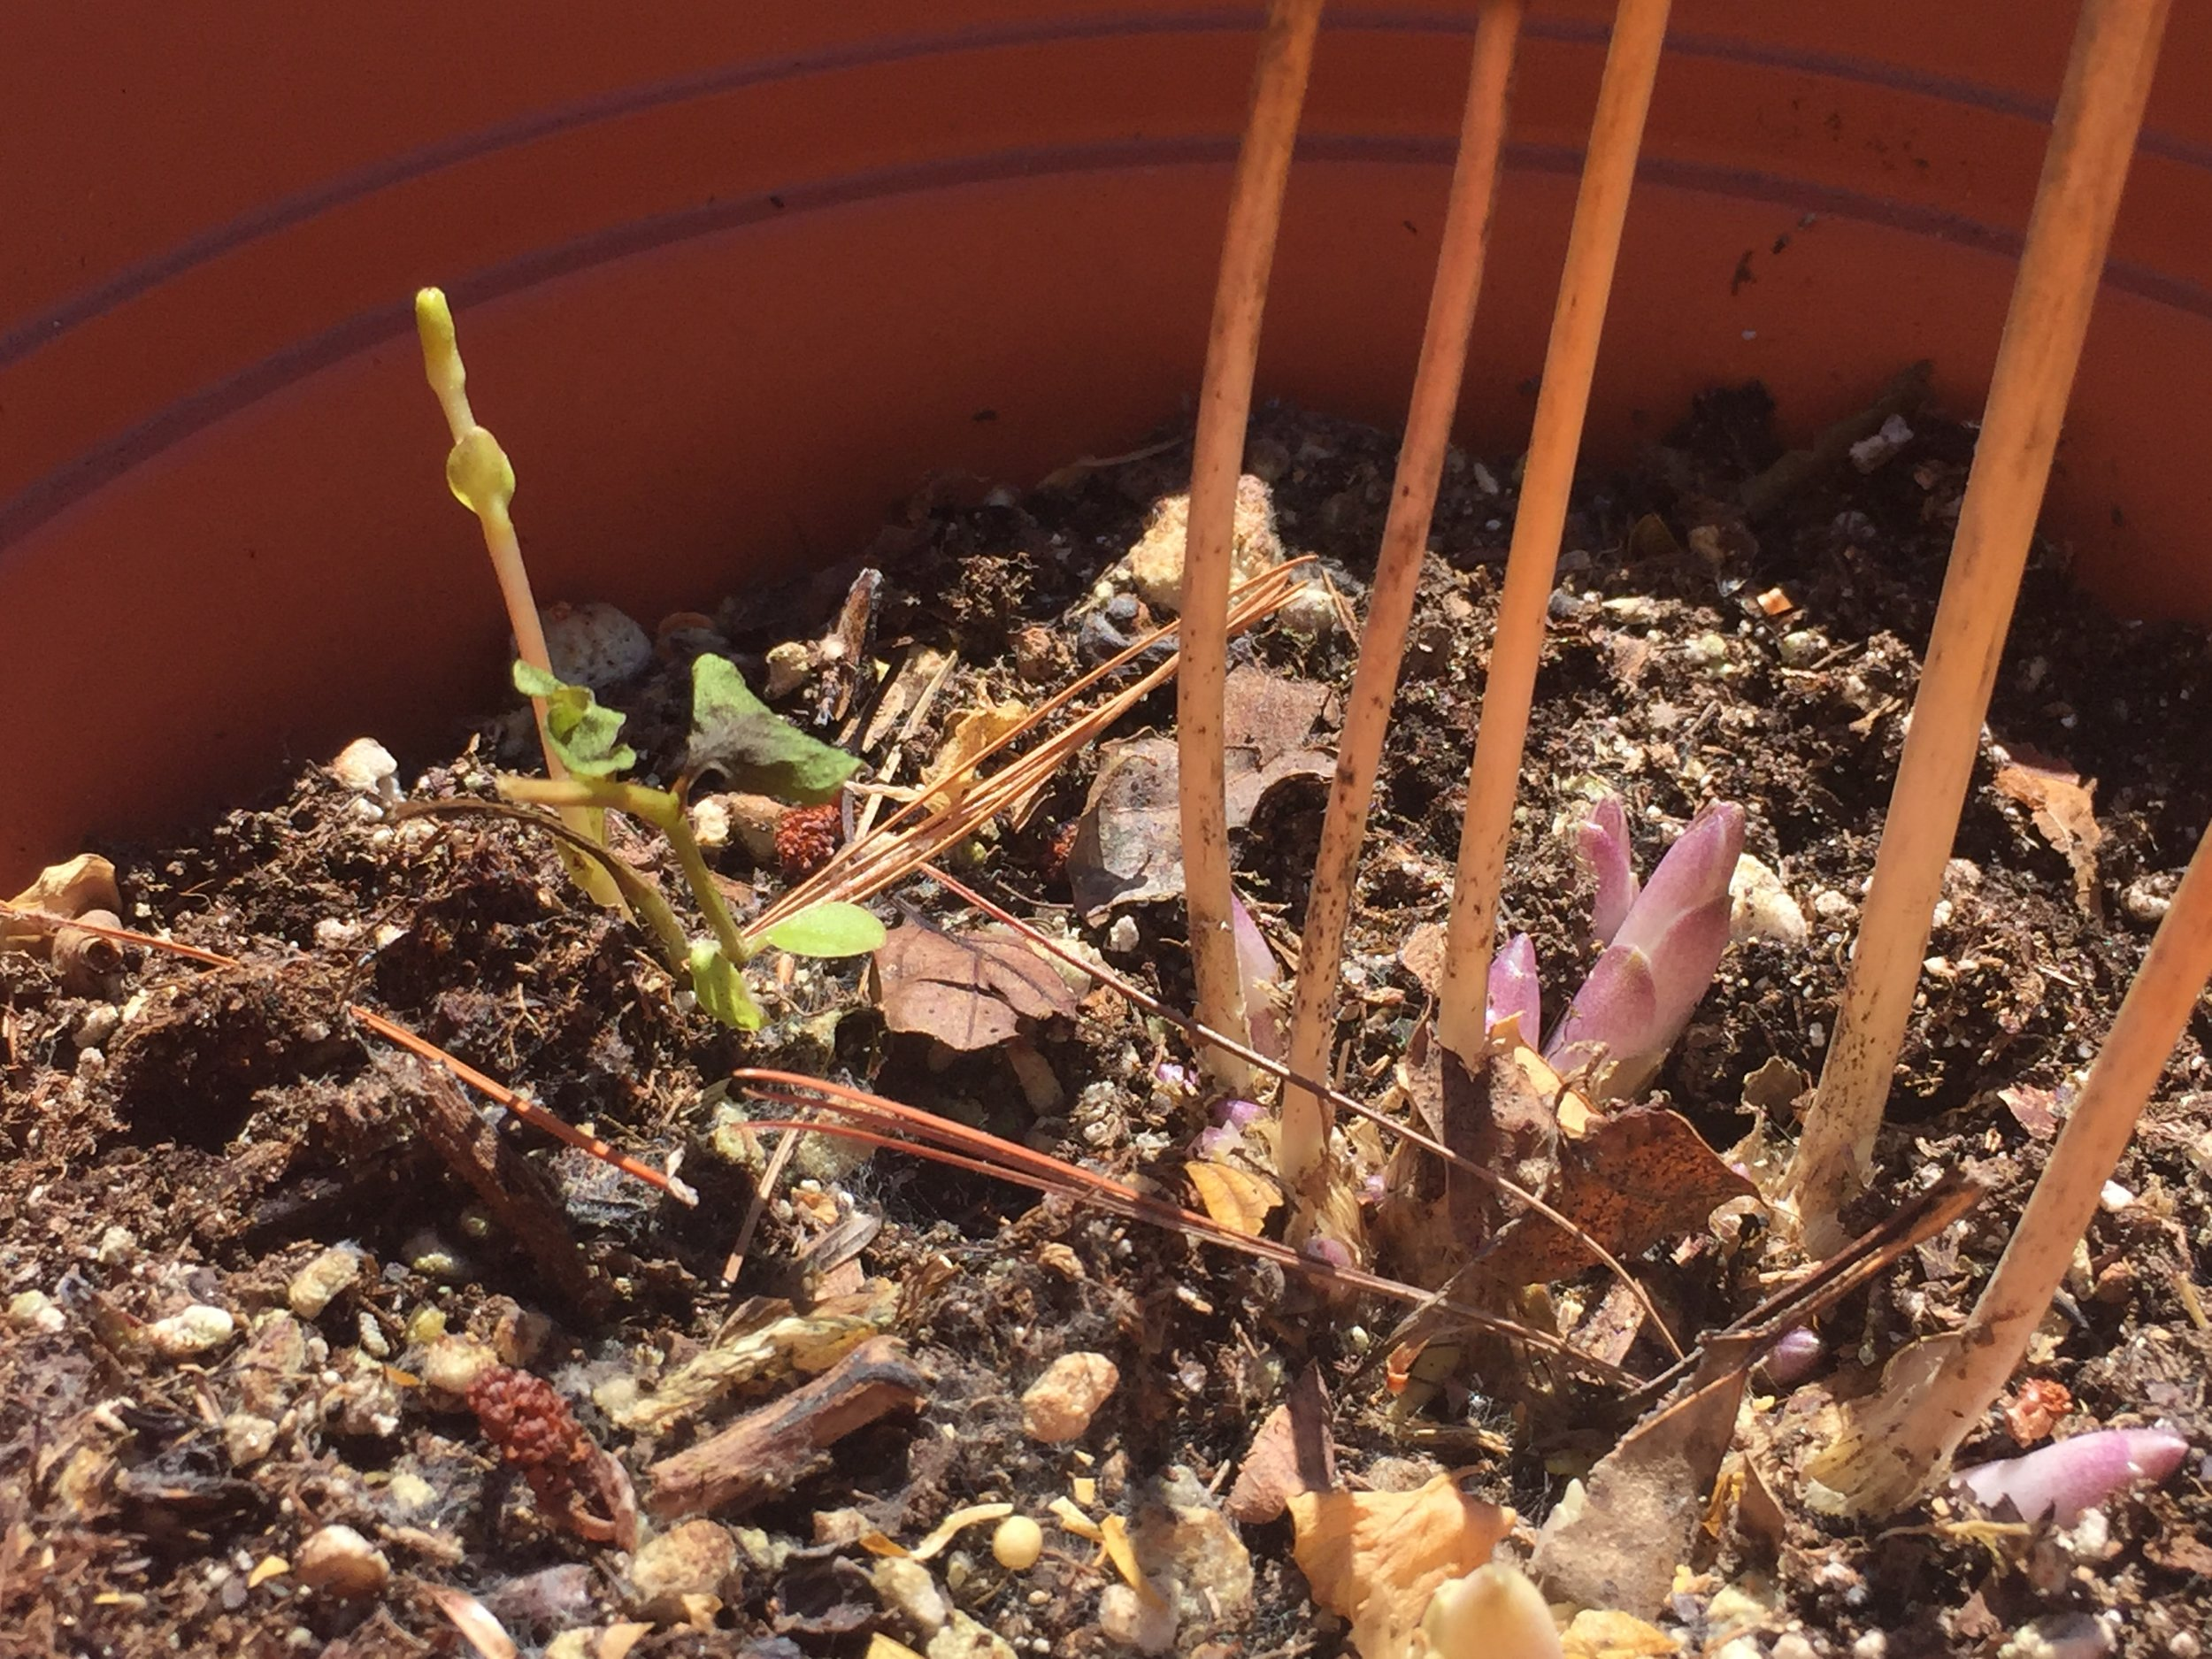 April 19 - From the garage: Some potted perennials are starting.